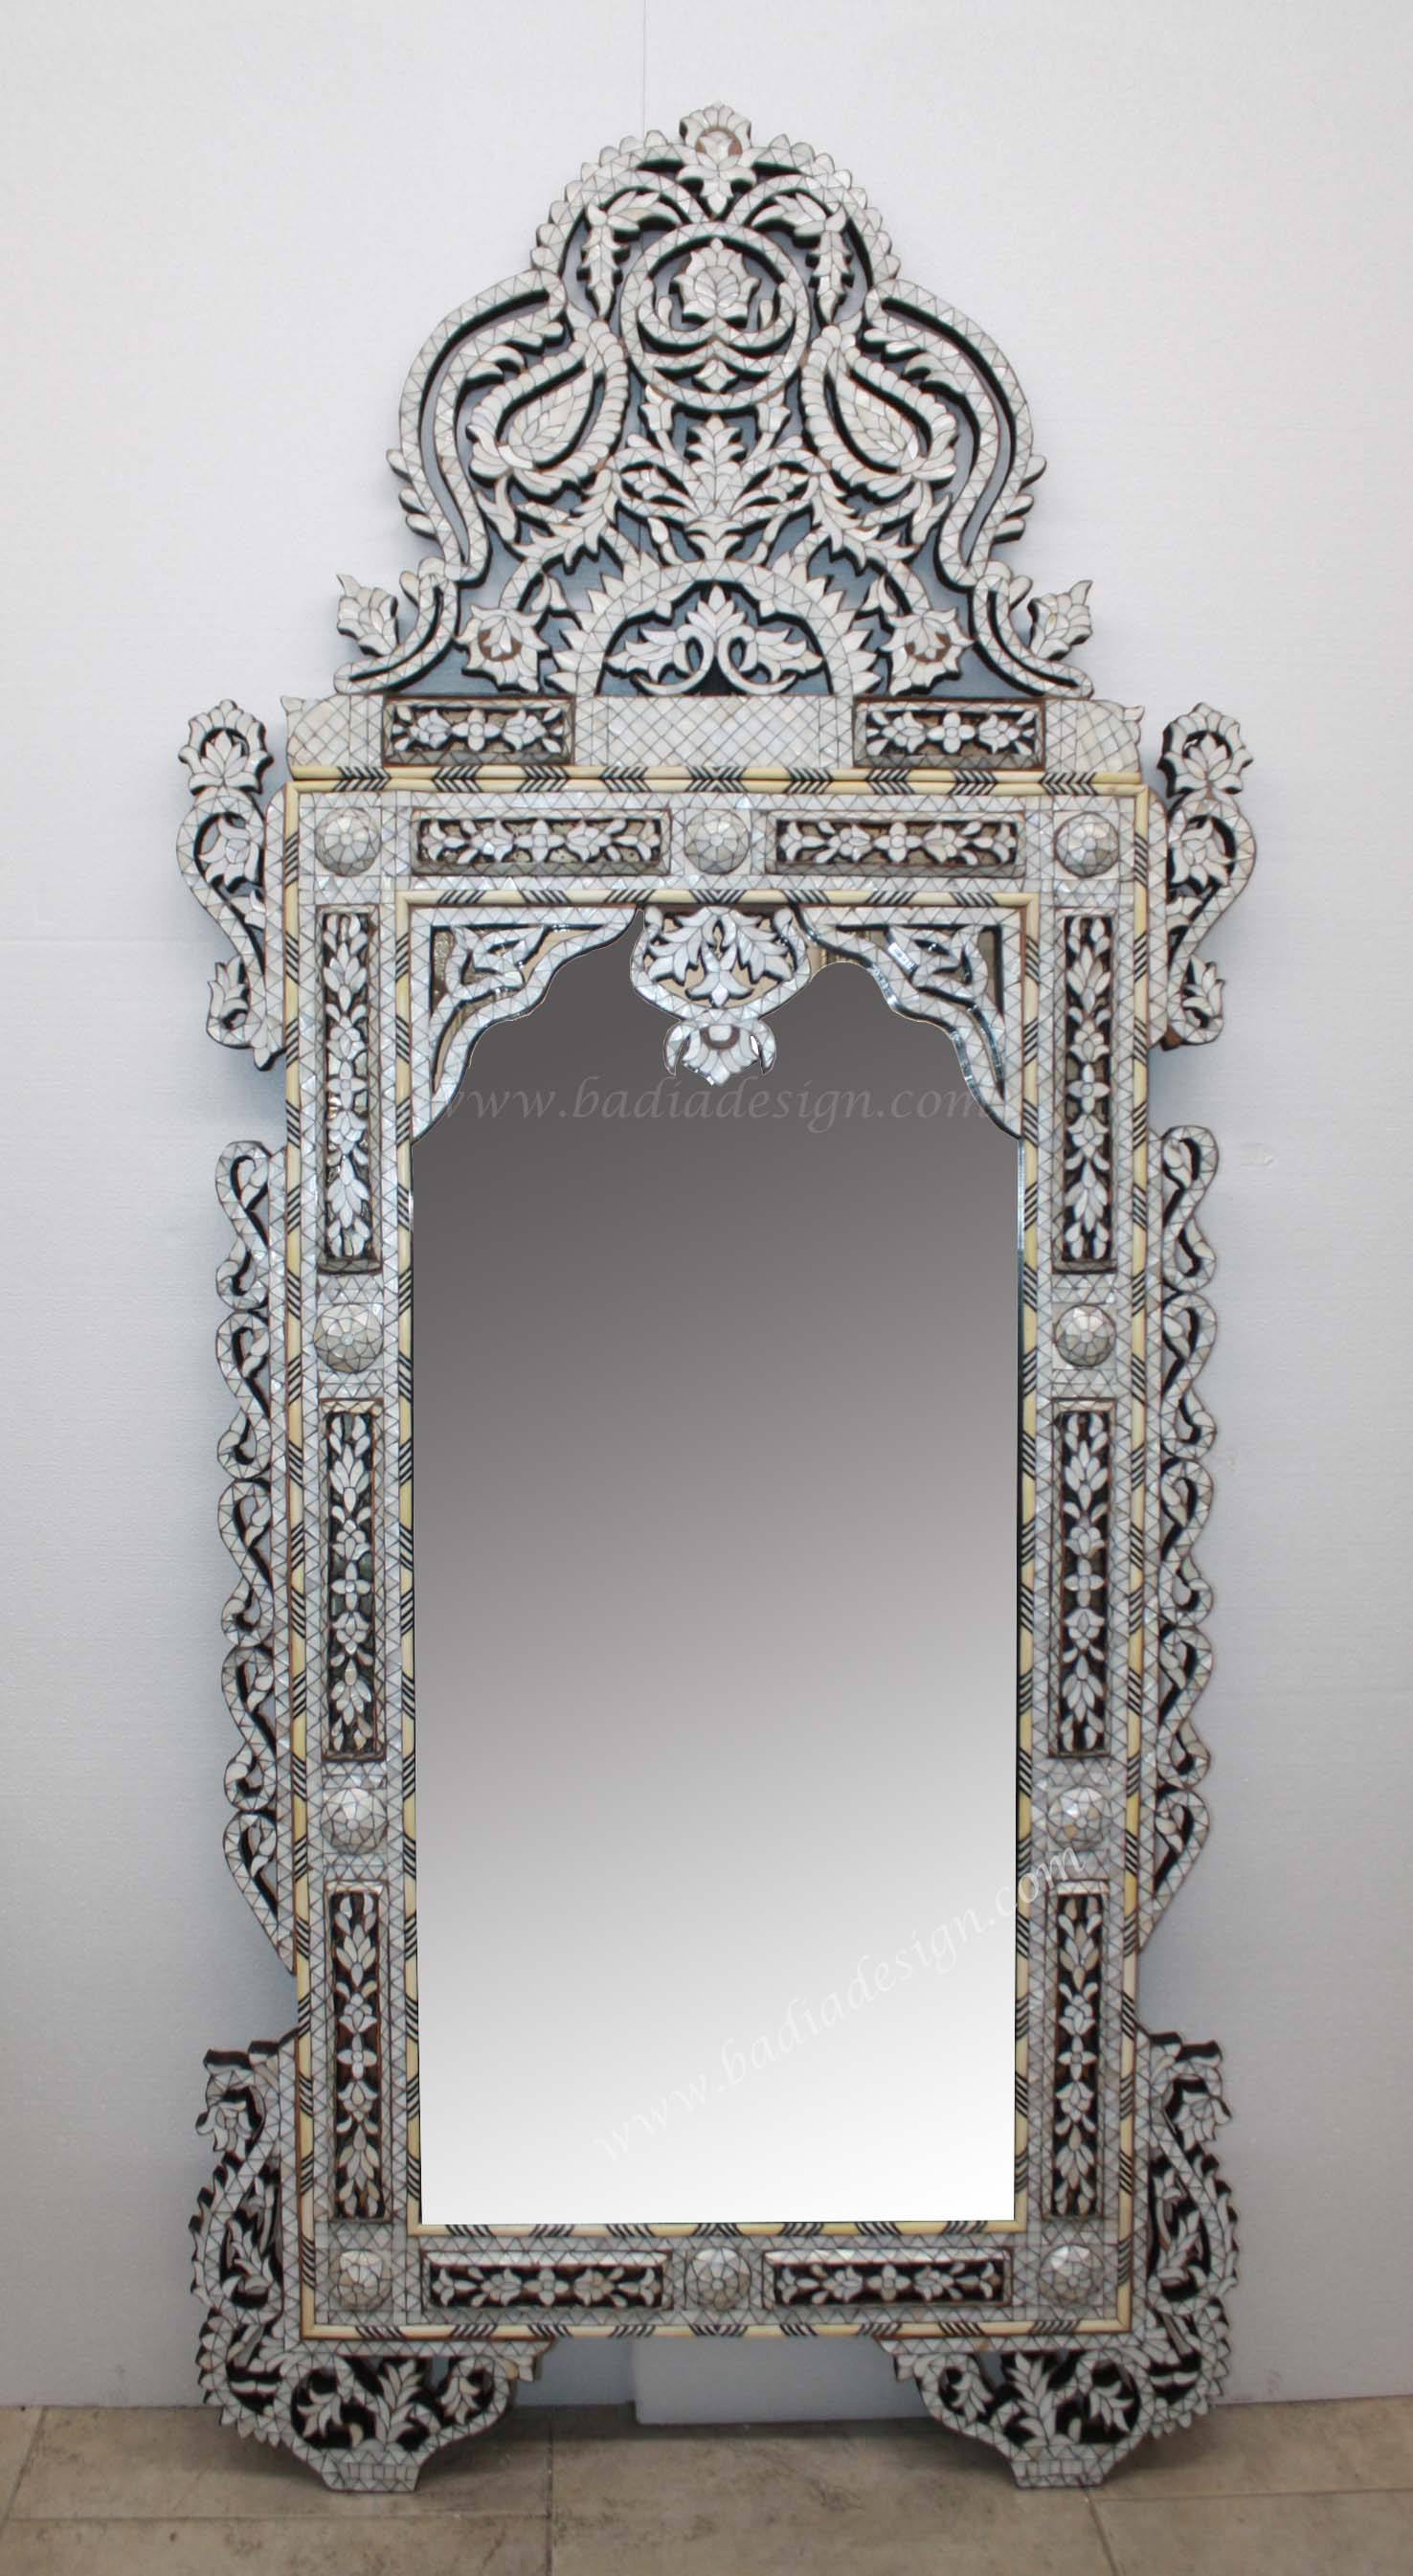 tall-moroccan-mother-of-pearl-mirror-m-mop025-1.jpg